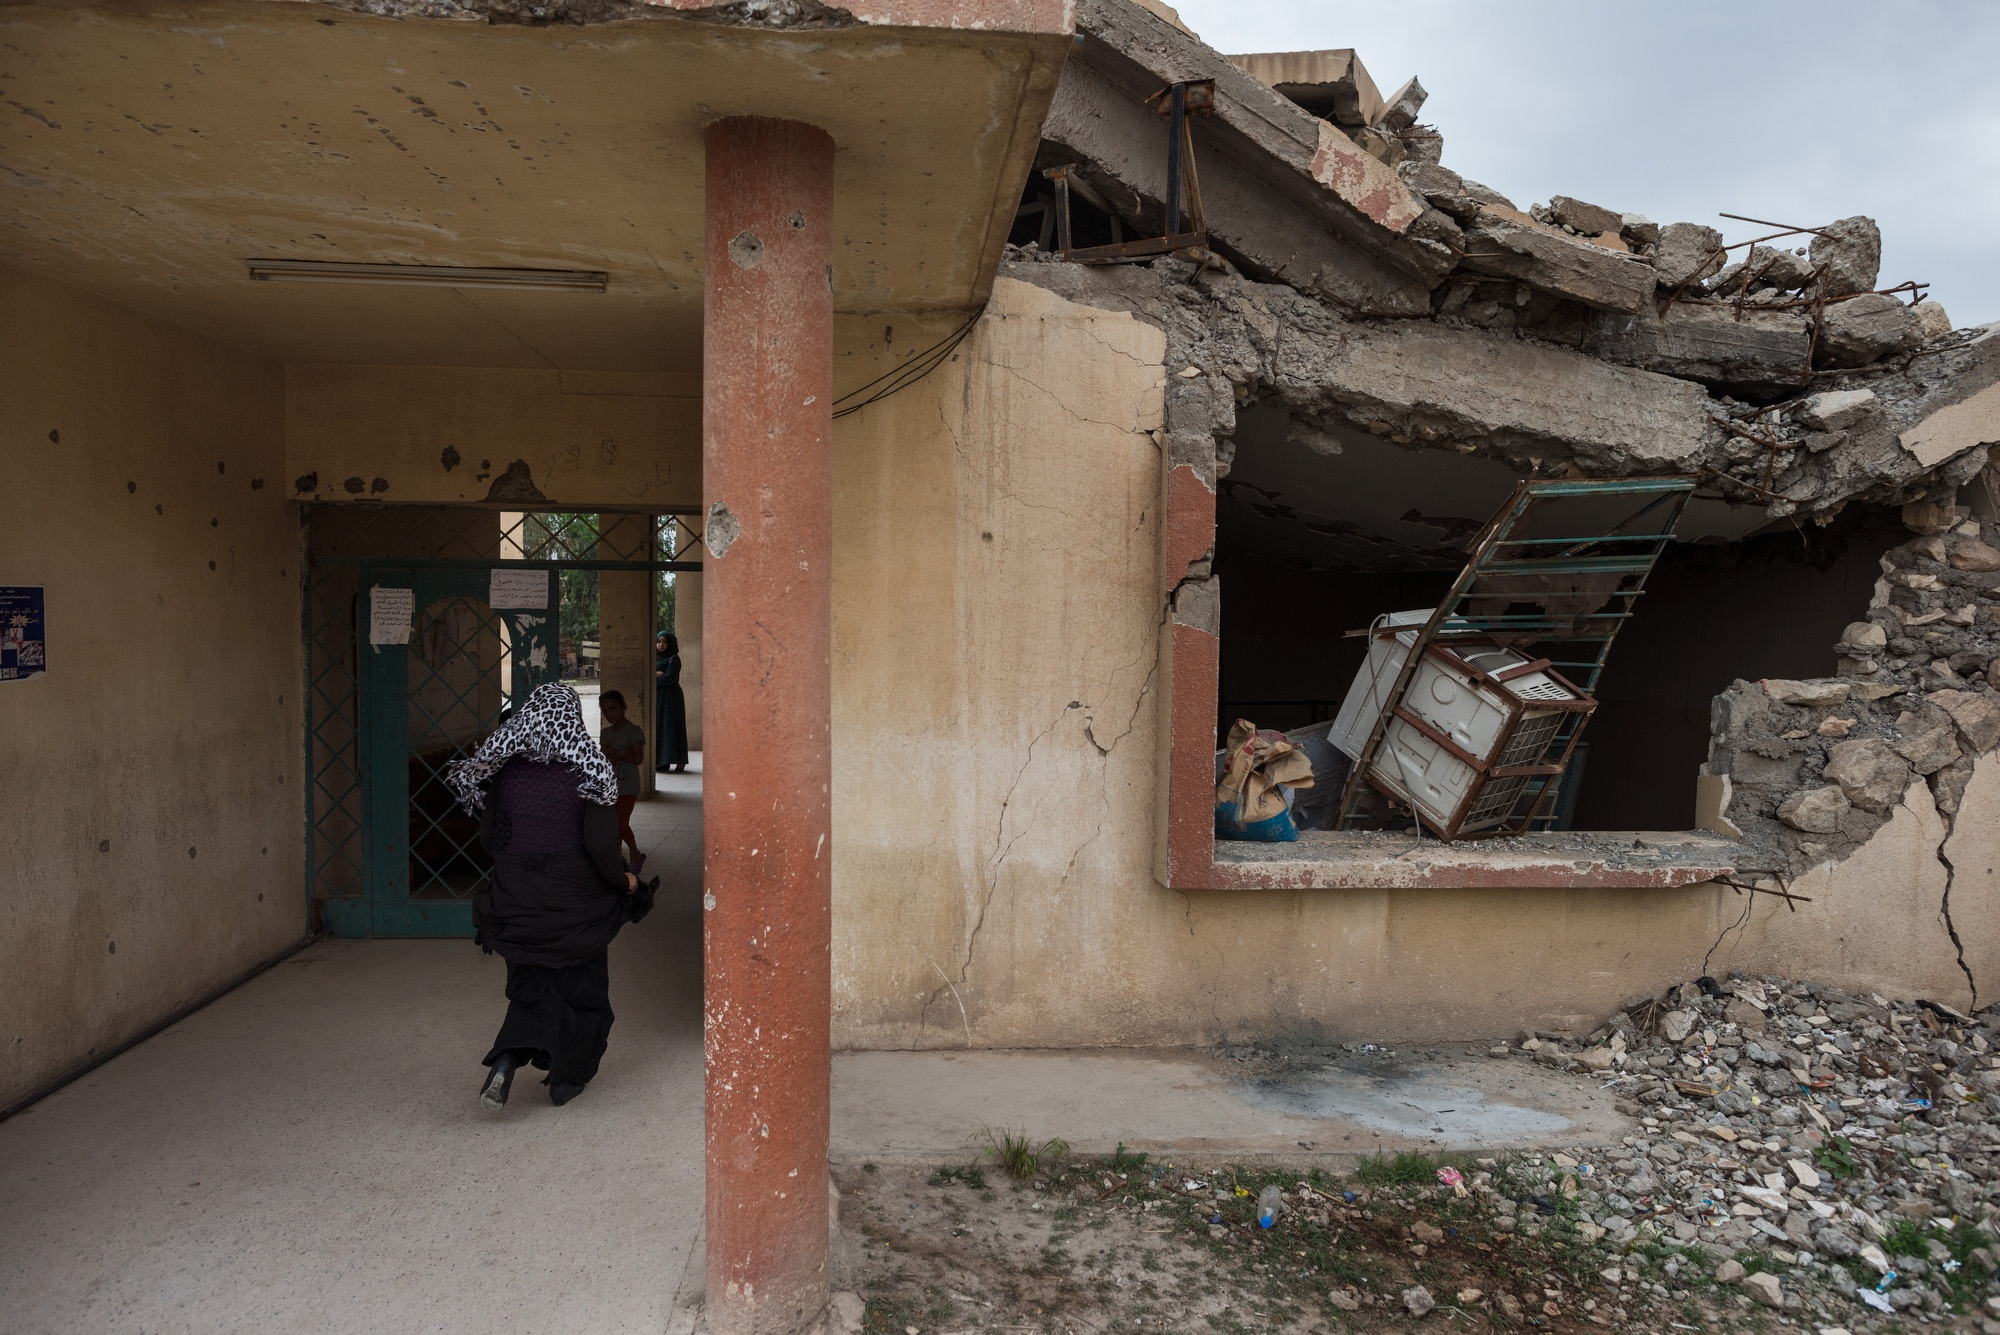 MOSUL 20180412 A teacher enters the Risala girls school in West Mosul. The school is one of few open in Mosuls old town, which was subject to the heaviest fighting during the offensive against Daesh. Photo: Vilhelm Stokstad / Kontinent